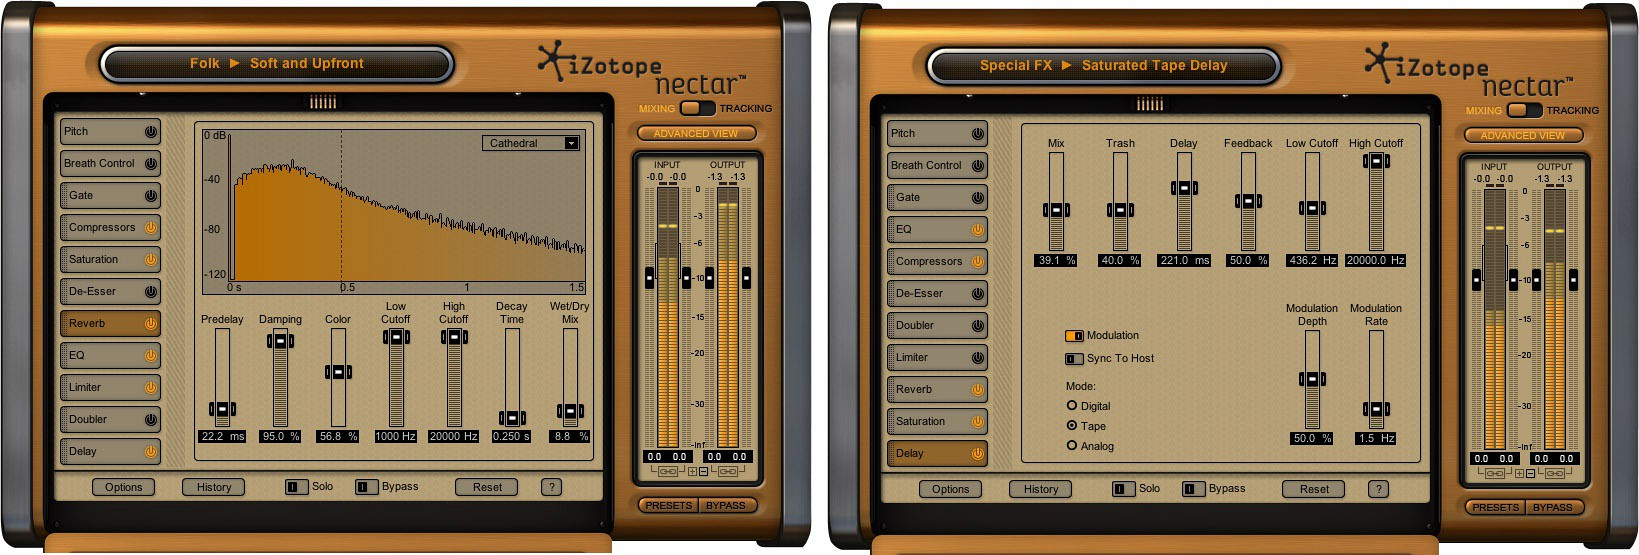 Izotope Nectar Elements Torrent